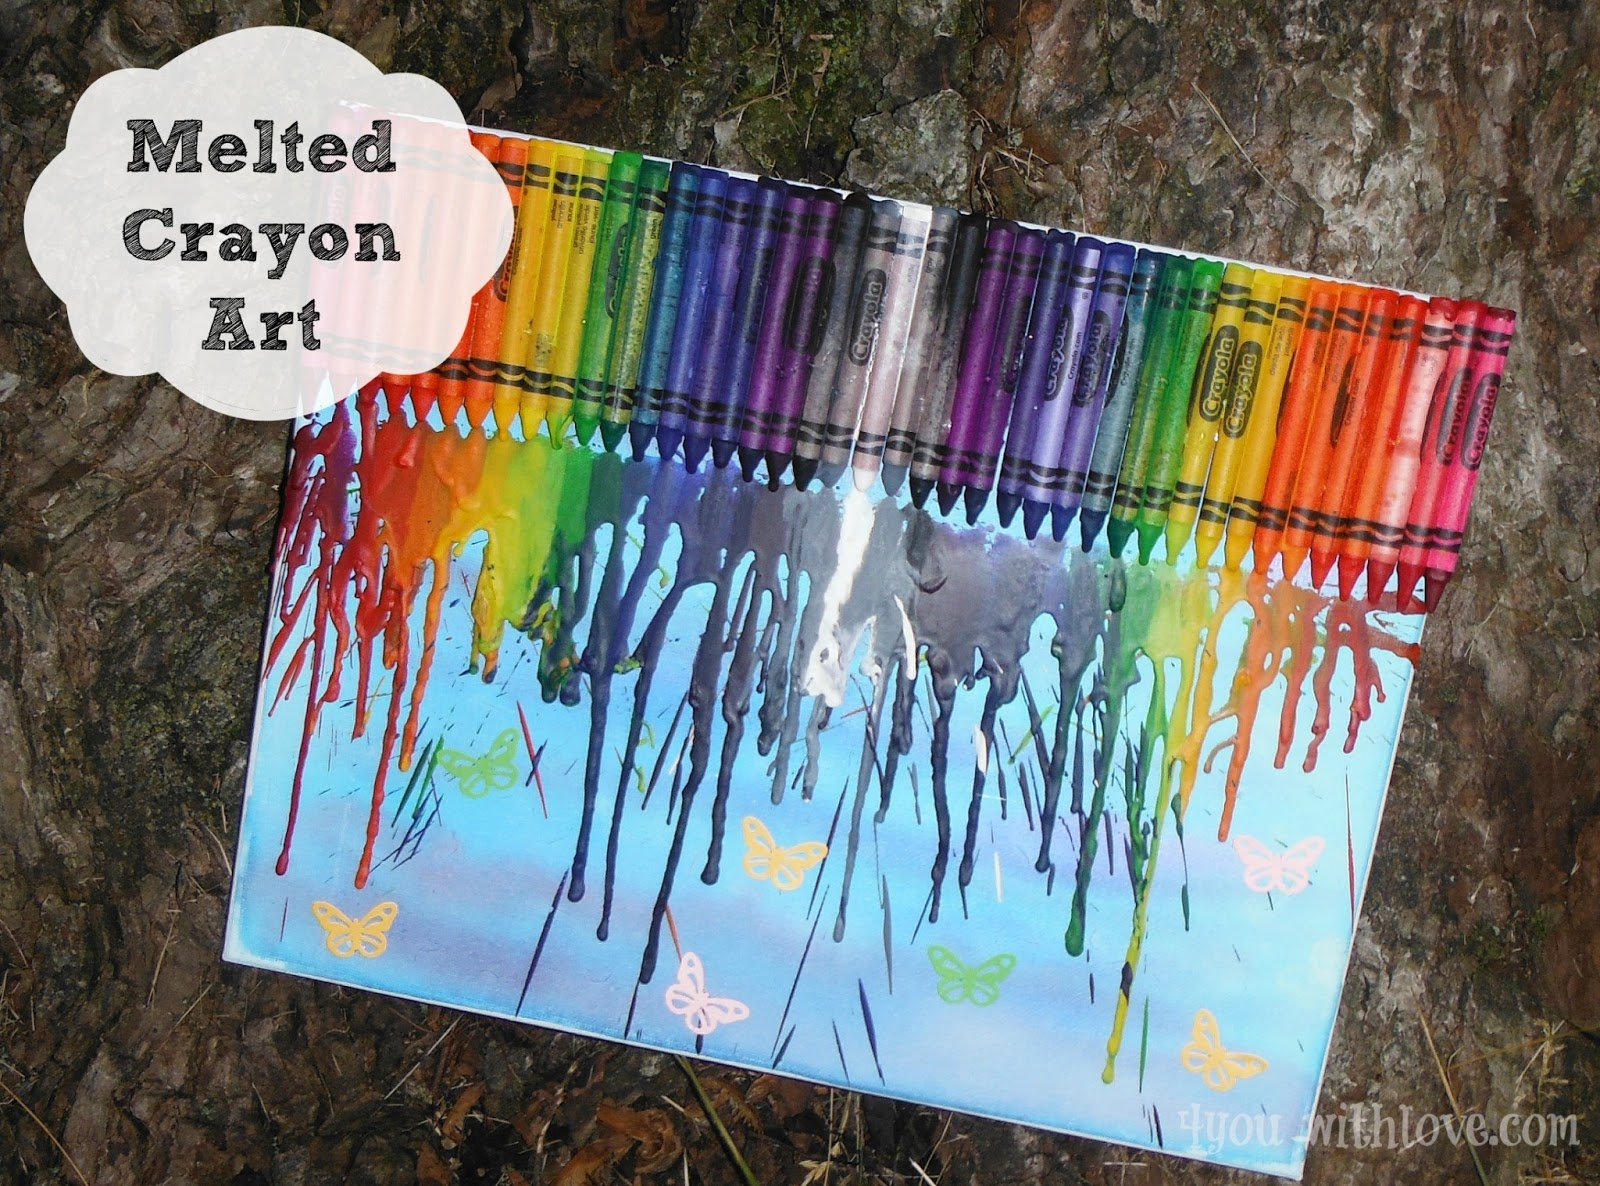 Here Is The Project From JoAnn That Inspired Us To Find More About Their Crayon Melted Canvas Go HERE